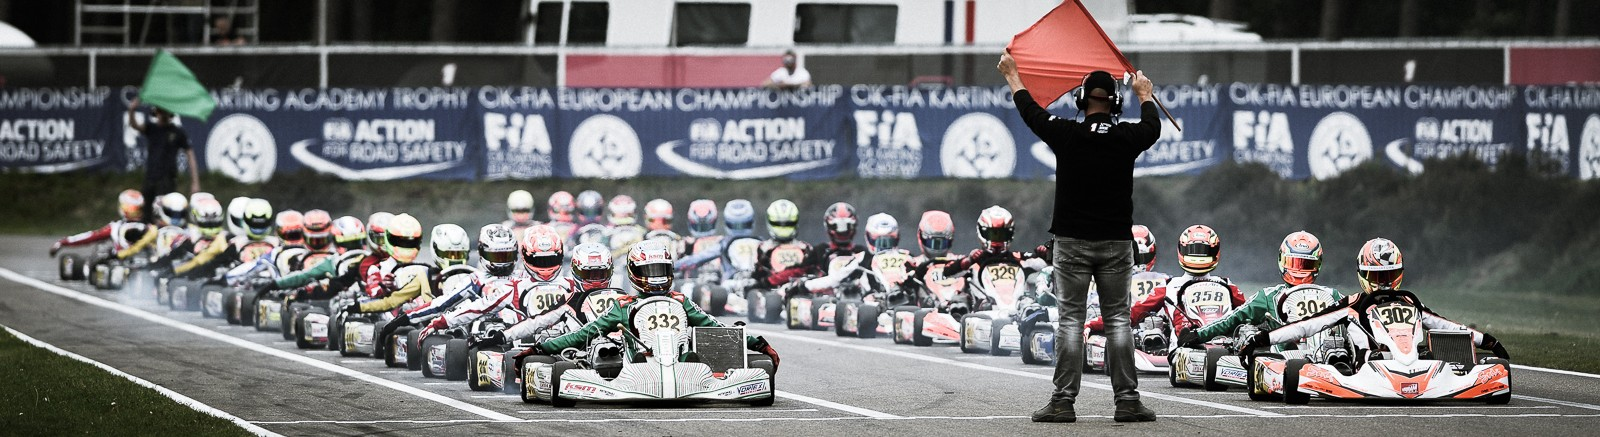 Karting Federation Internationale De L Automobile